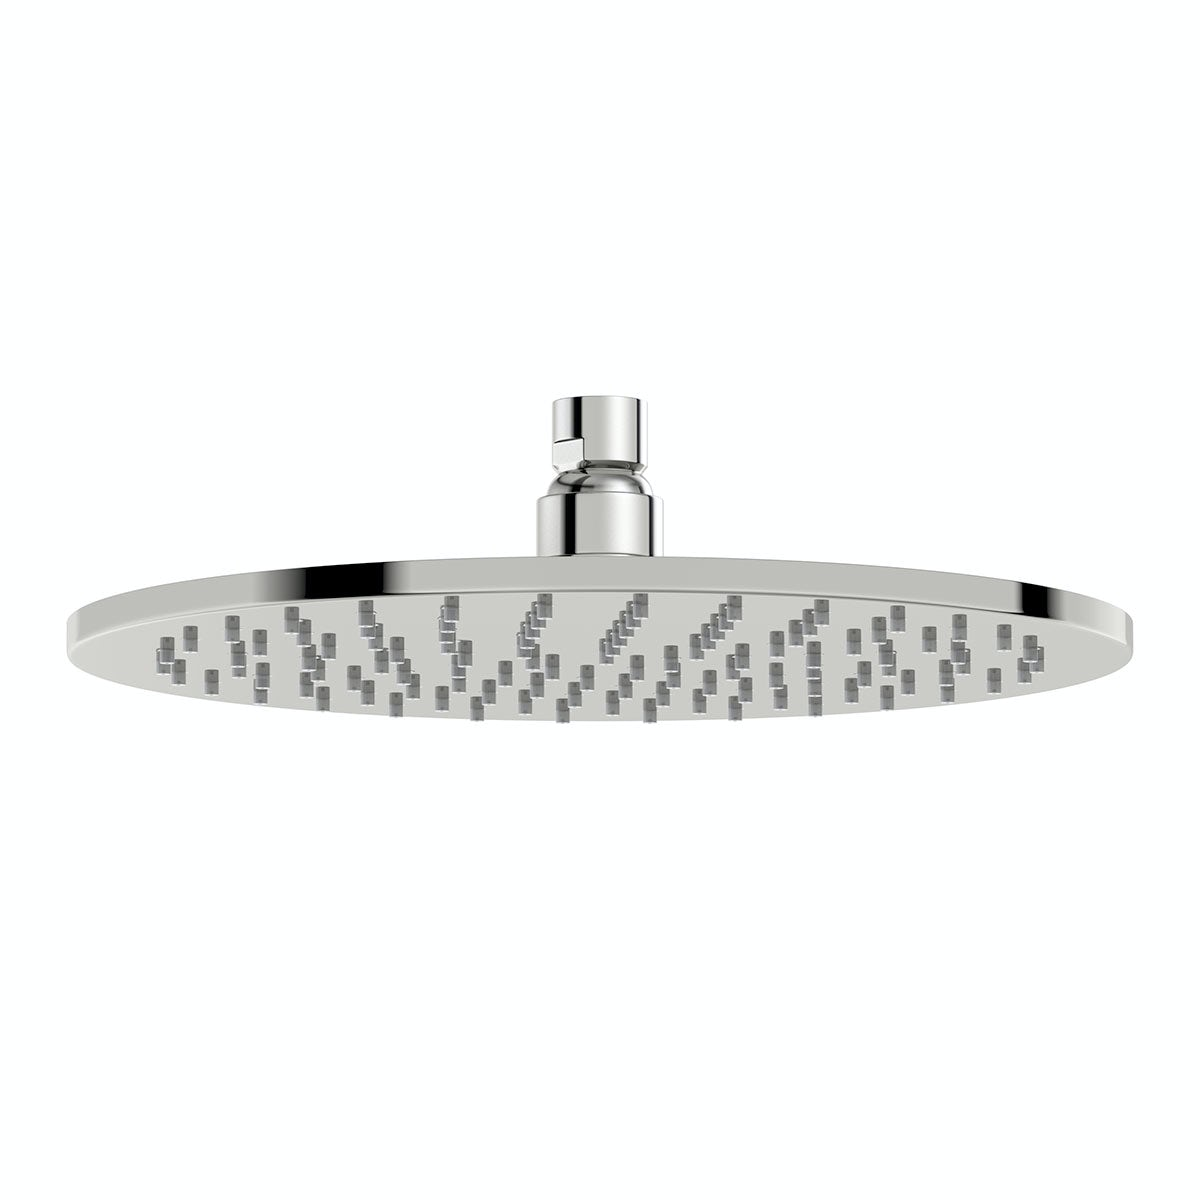 Aria round shower head